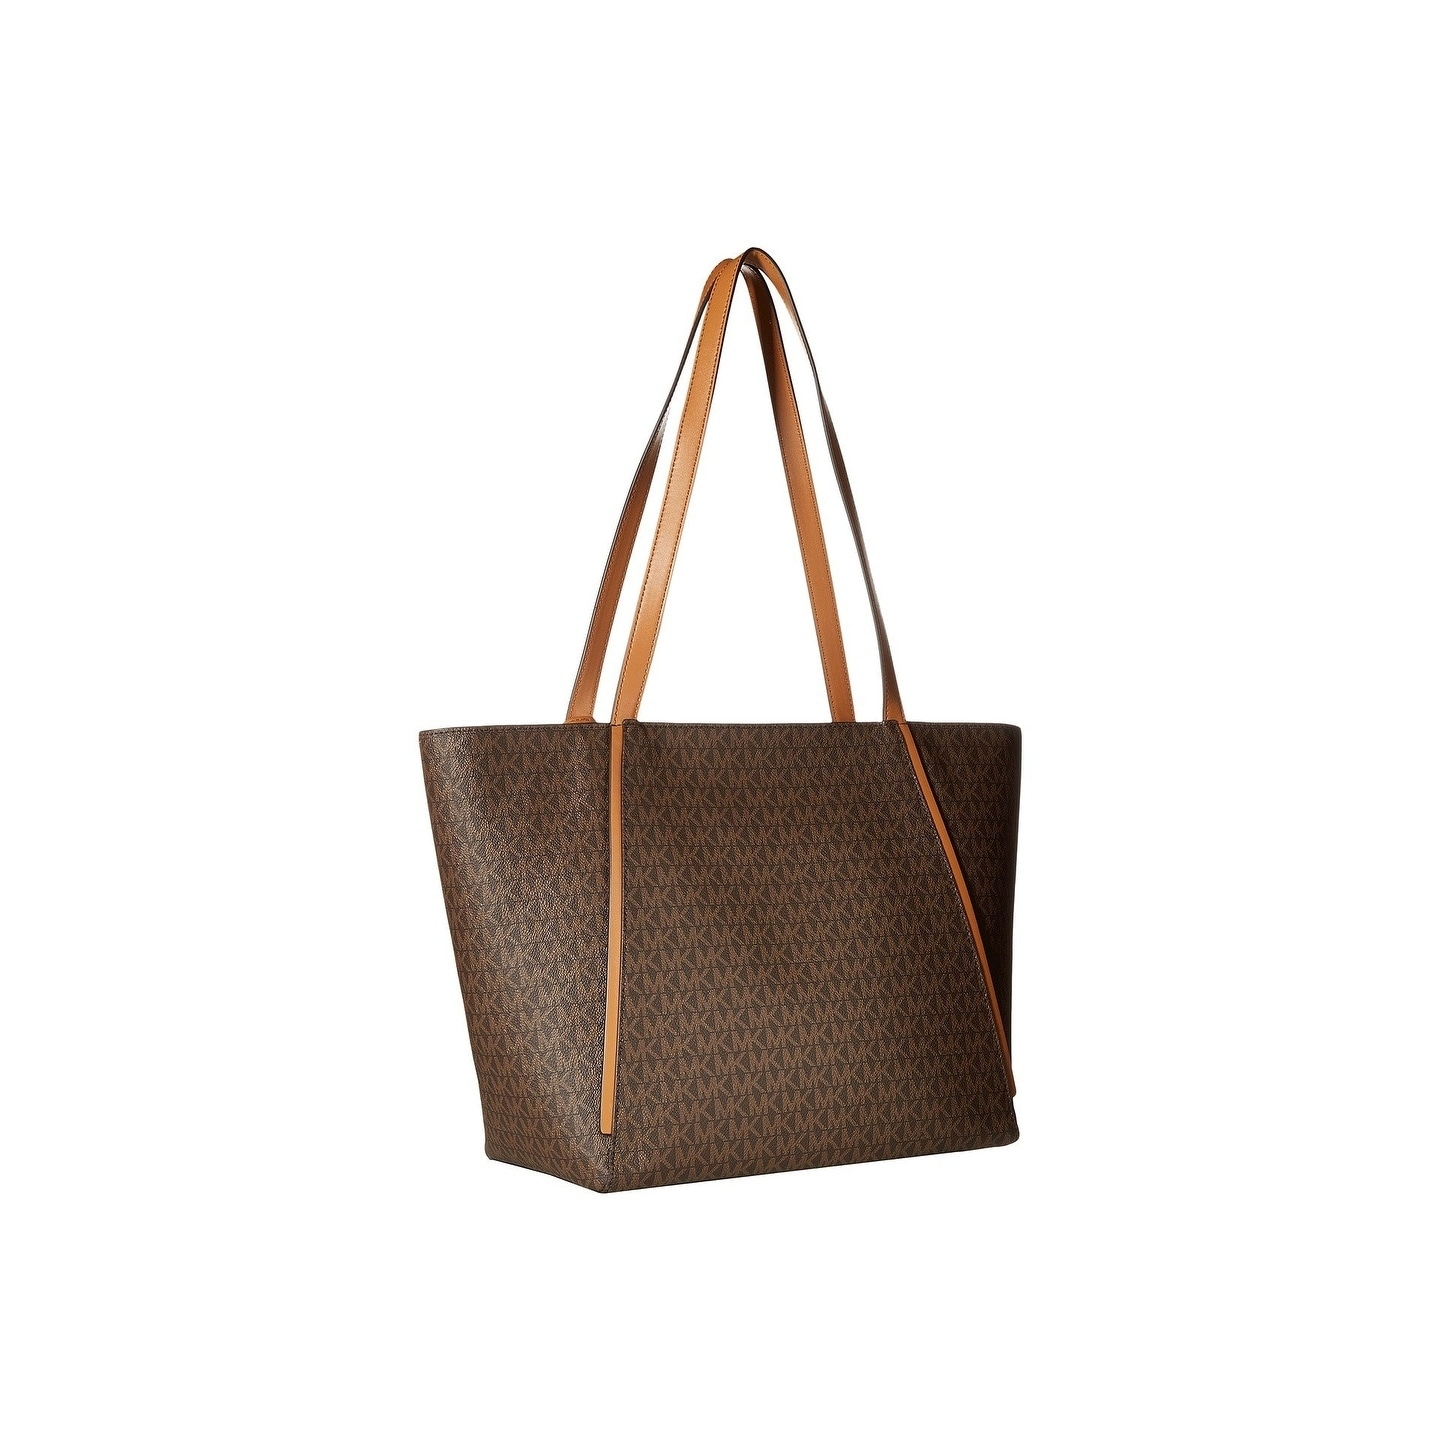 6a90dc3090a4 Shop MICHAEL Michael Kors Signature Whitney Large Tote - Free Shipping  Today - Overstock - 22101064